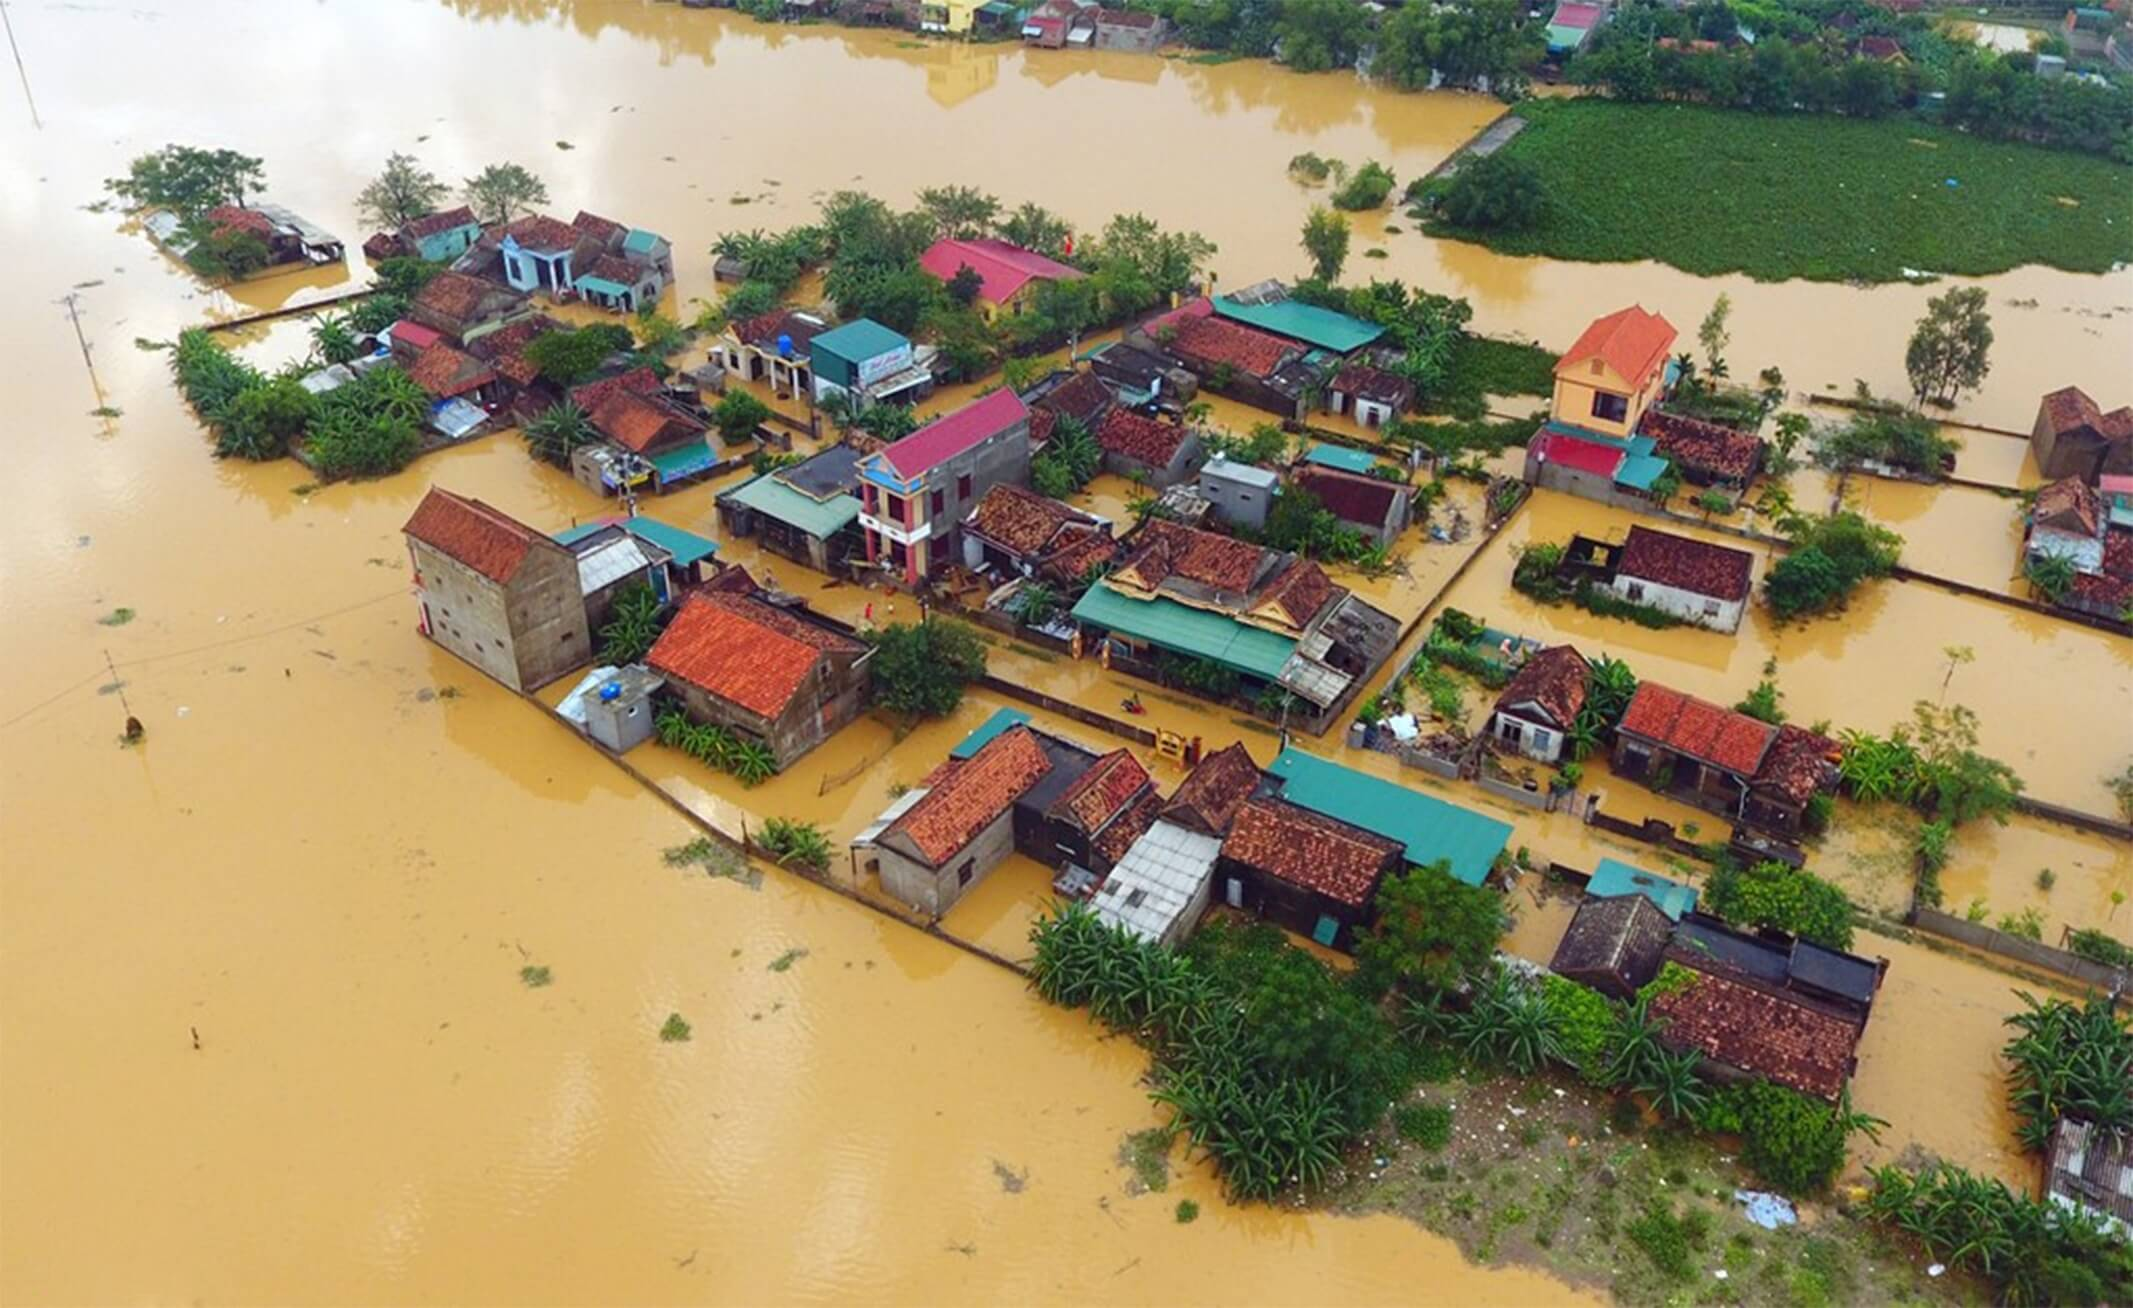 Ecosystem-based adaptation to increase flood resilience of vulnerable people – Evidence from central Vietnam